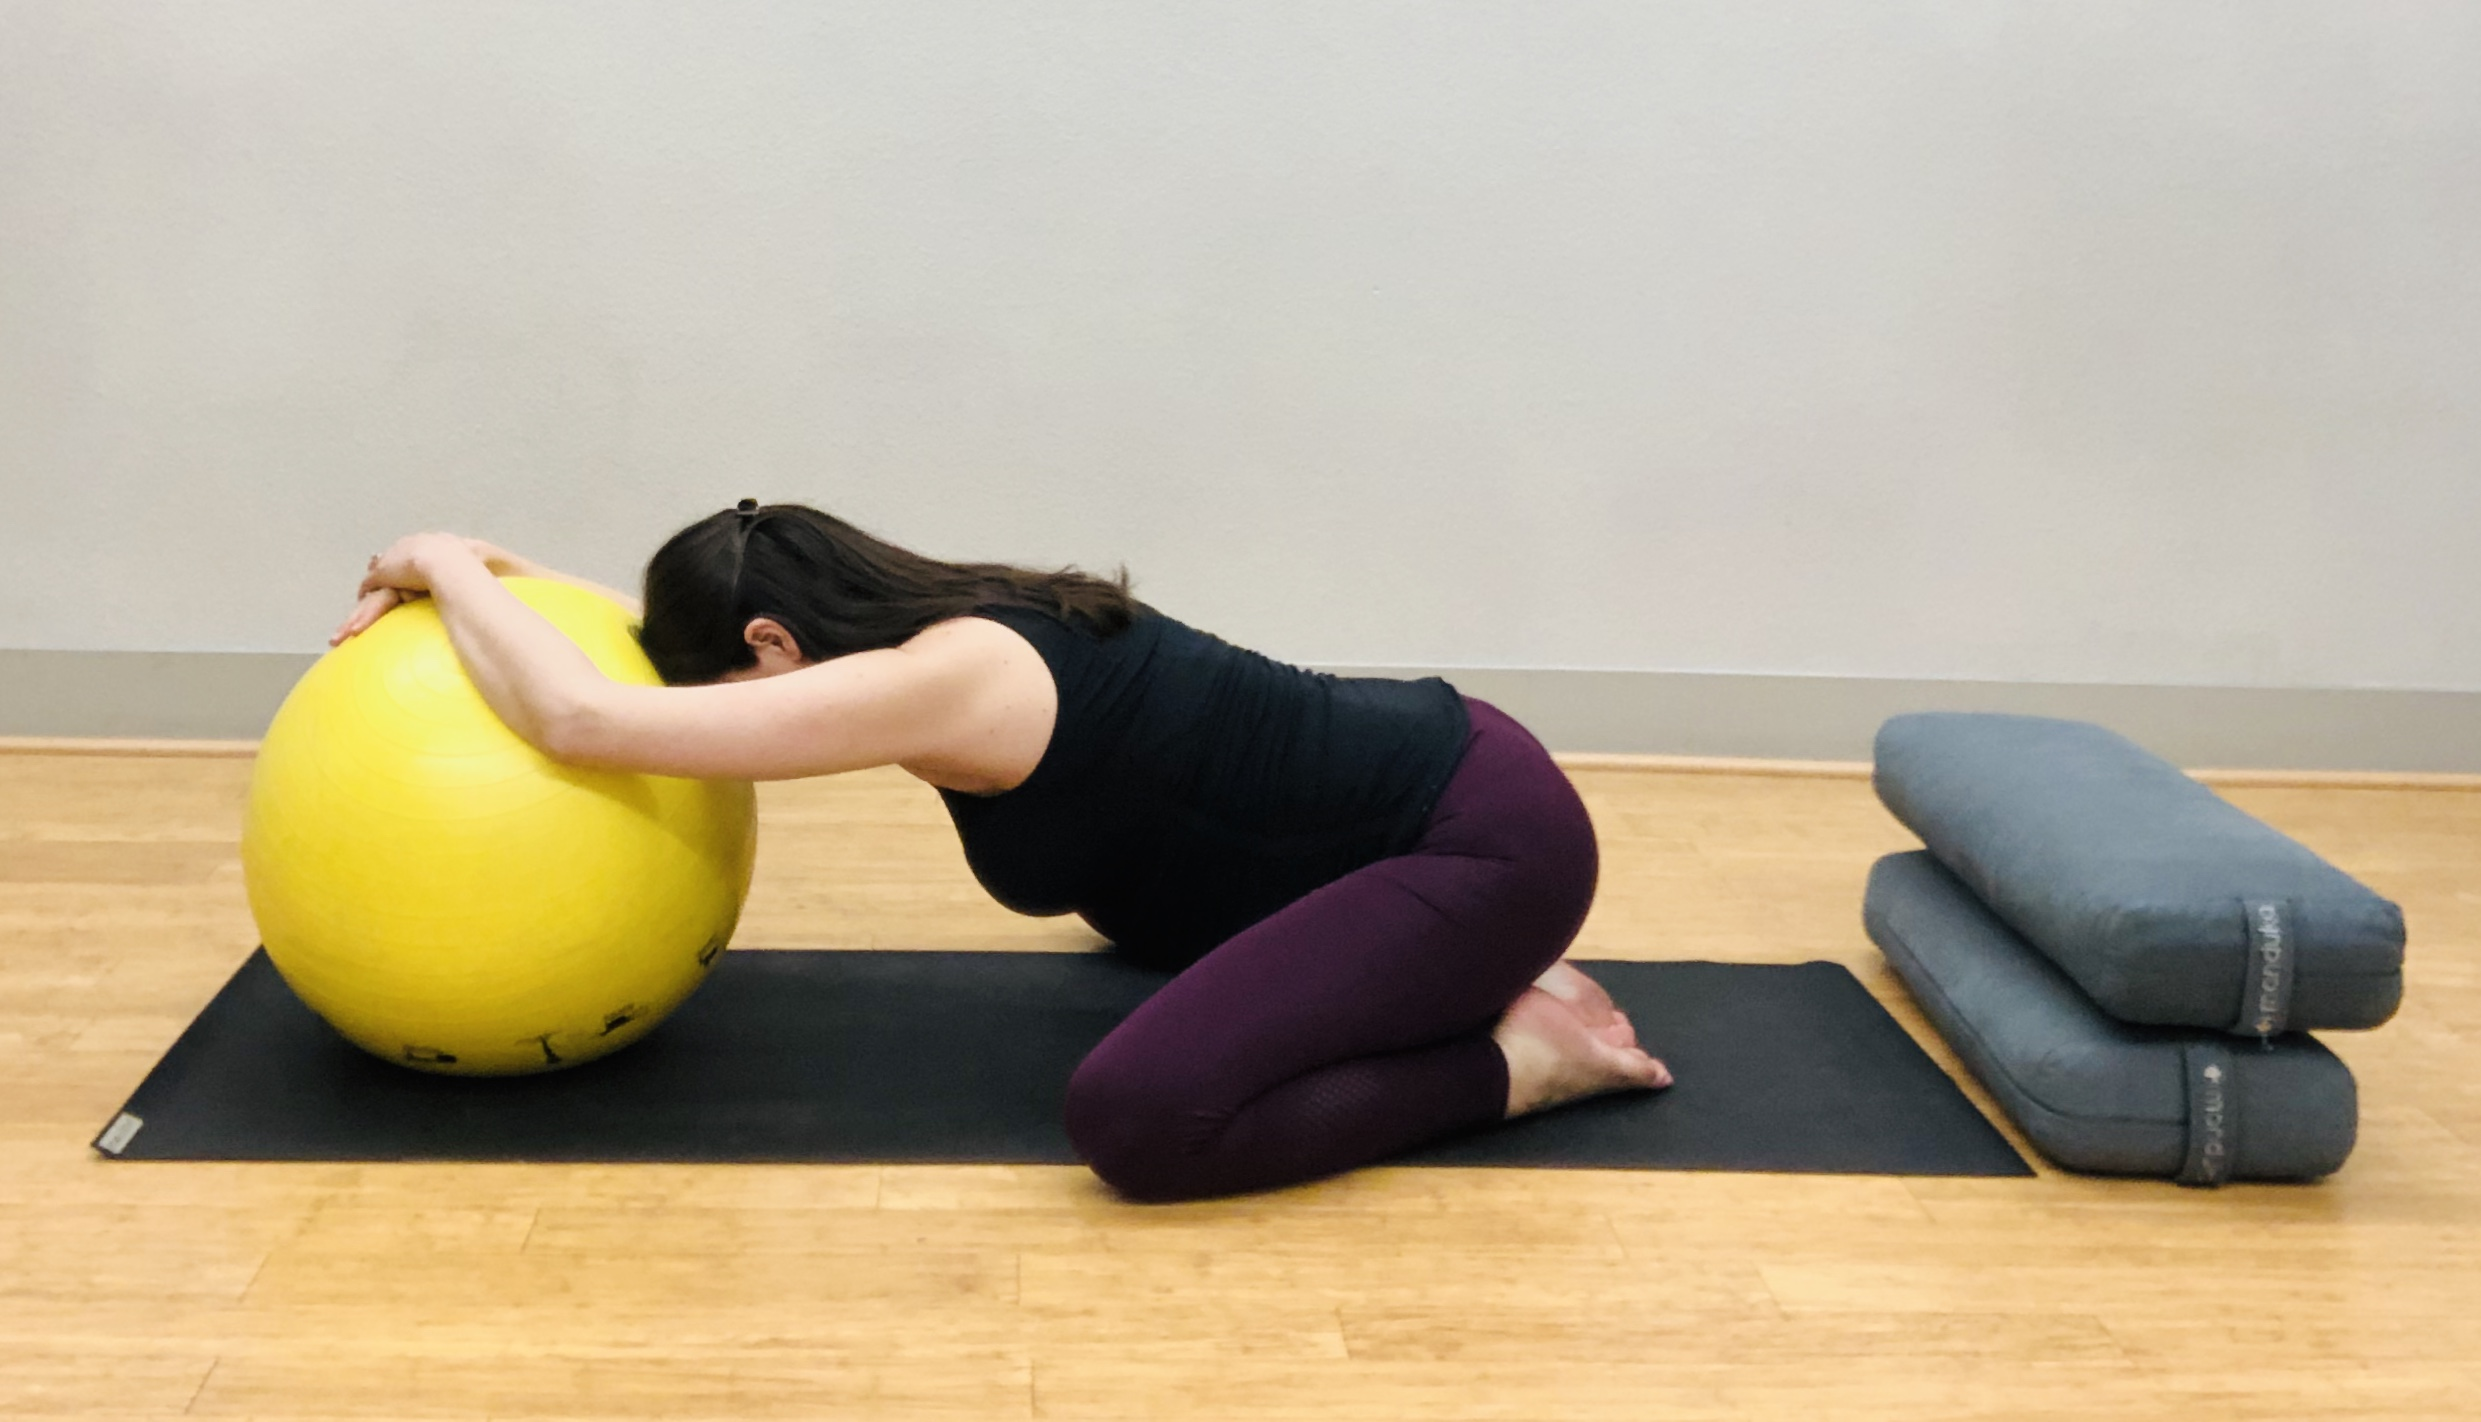 Option #2: Child's Pose with Birthing Ball. Allows for more space for belly and can feel good to rest forehead on the ball.